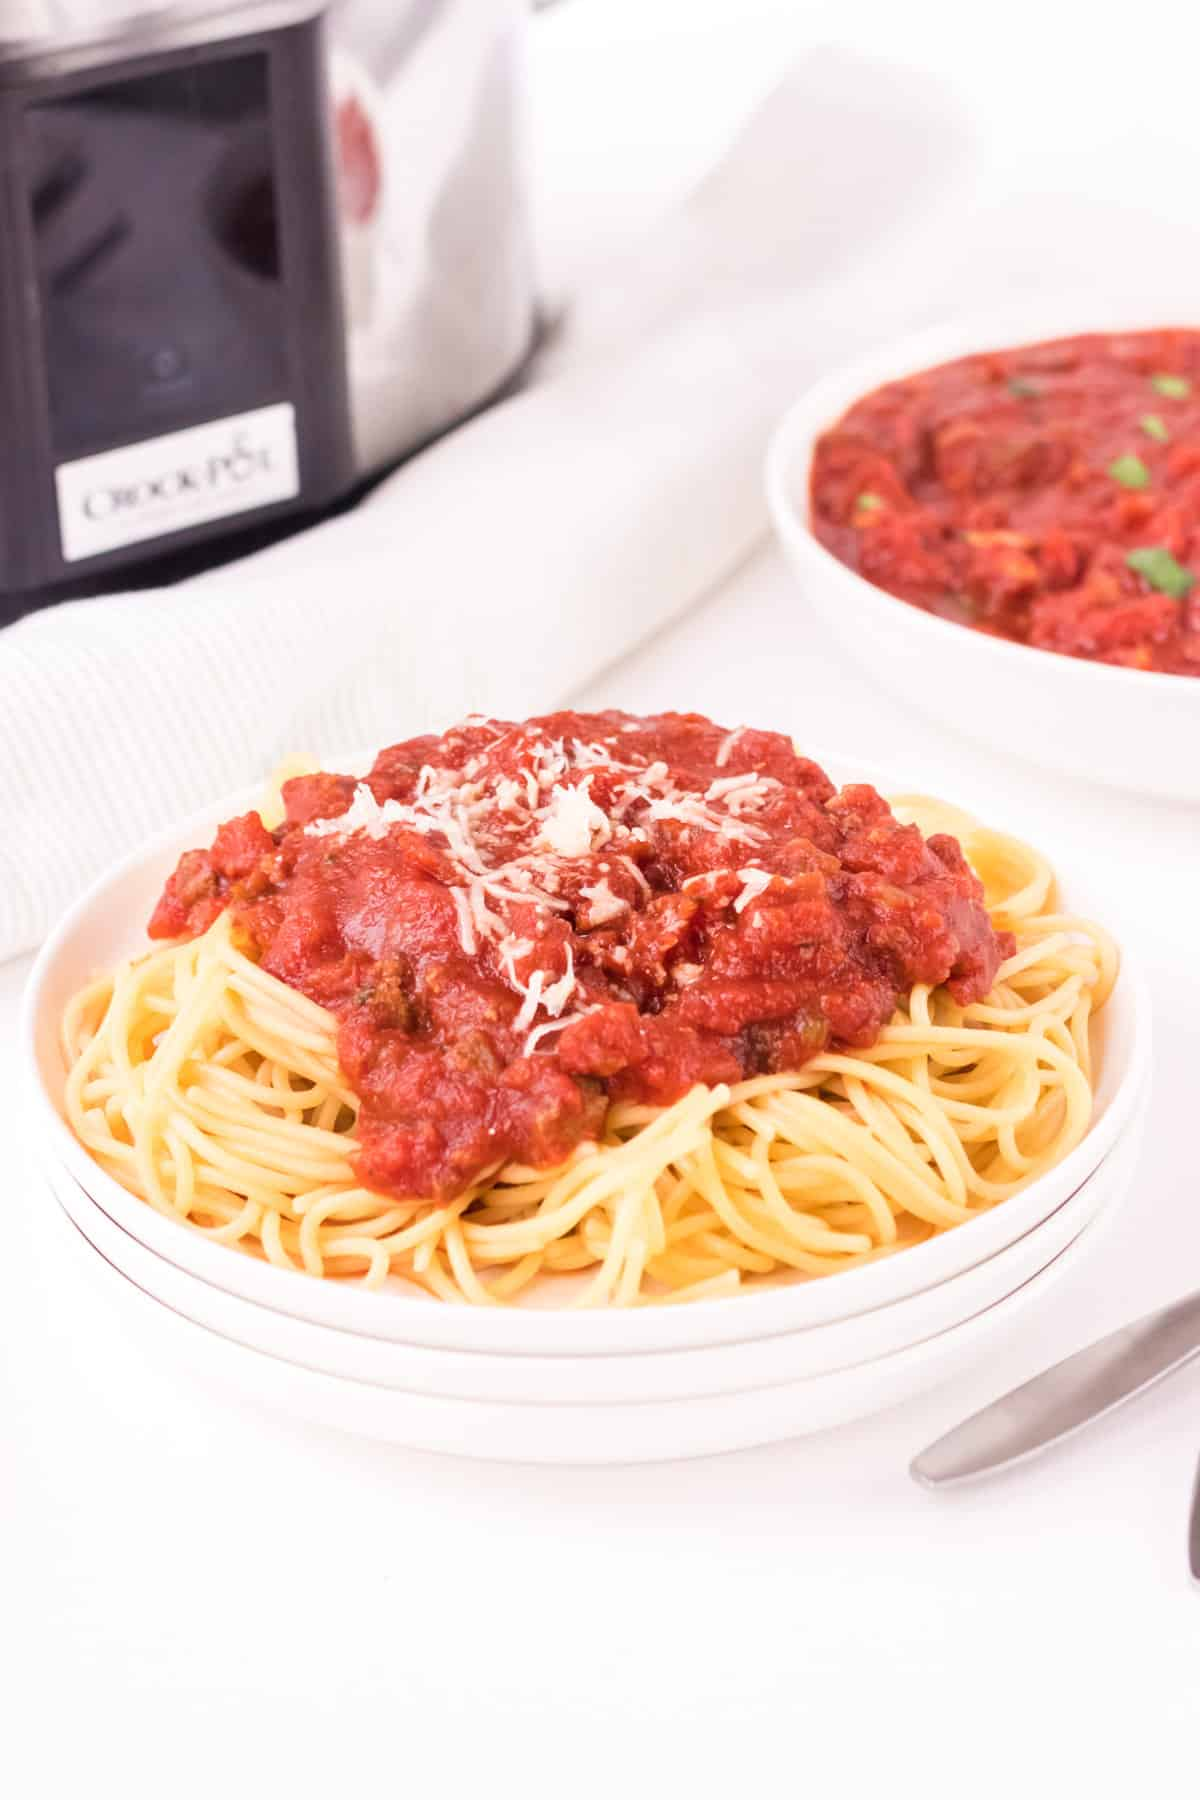 Stack of white plates with spaghetti and meat sauce topped with shredded cheese with bowl of sauce and slow  cooker in background.